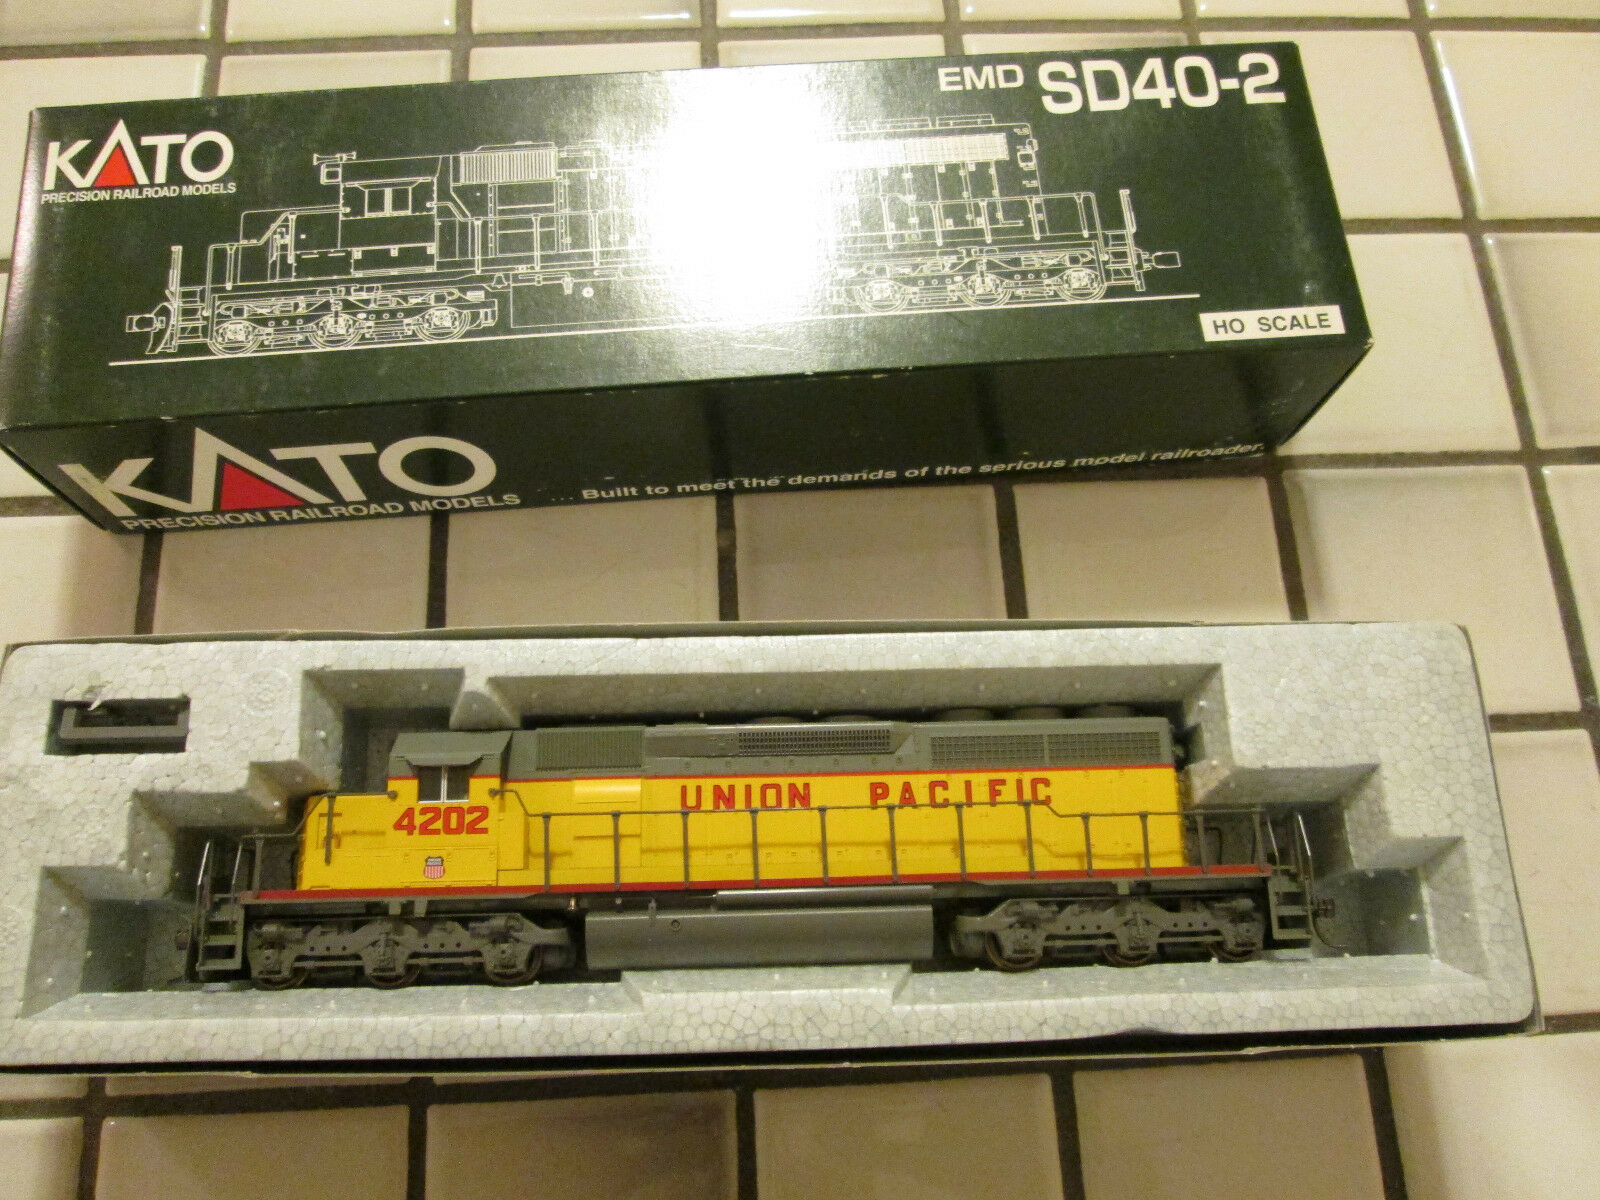 KATO UNION PACIFIC powered engine HO SCALE